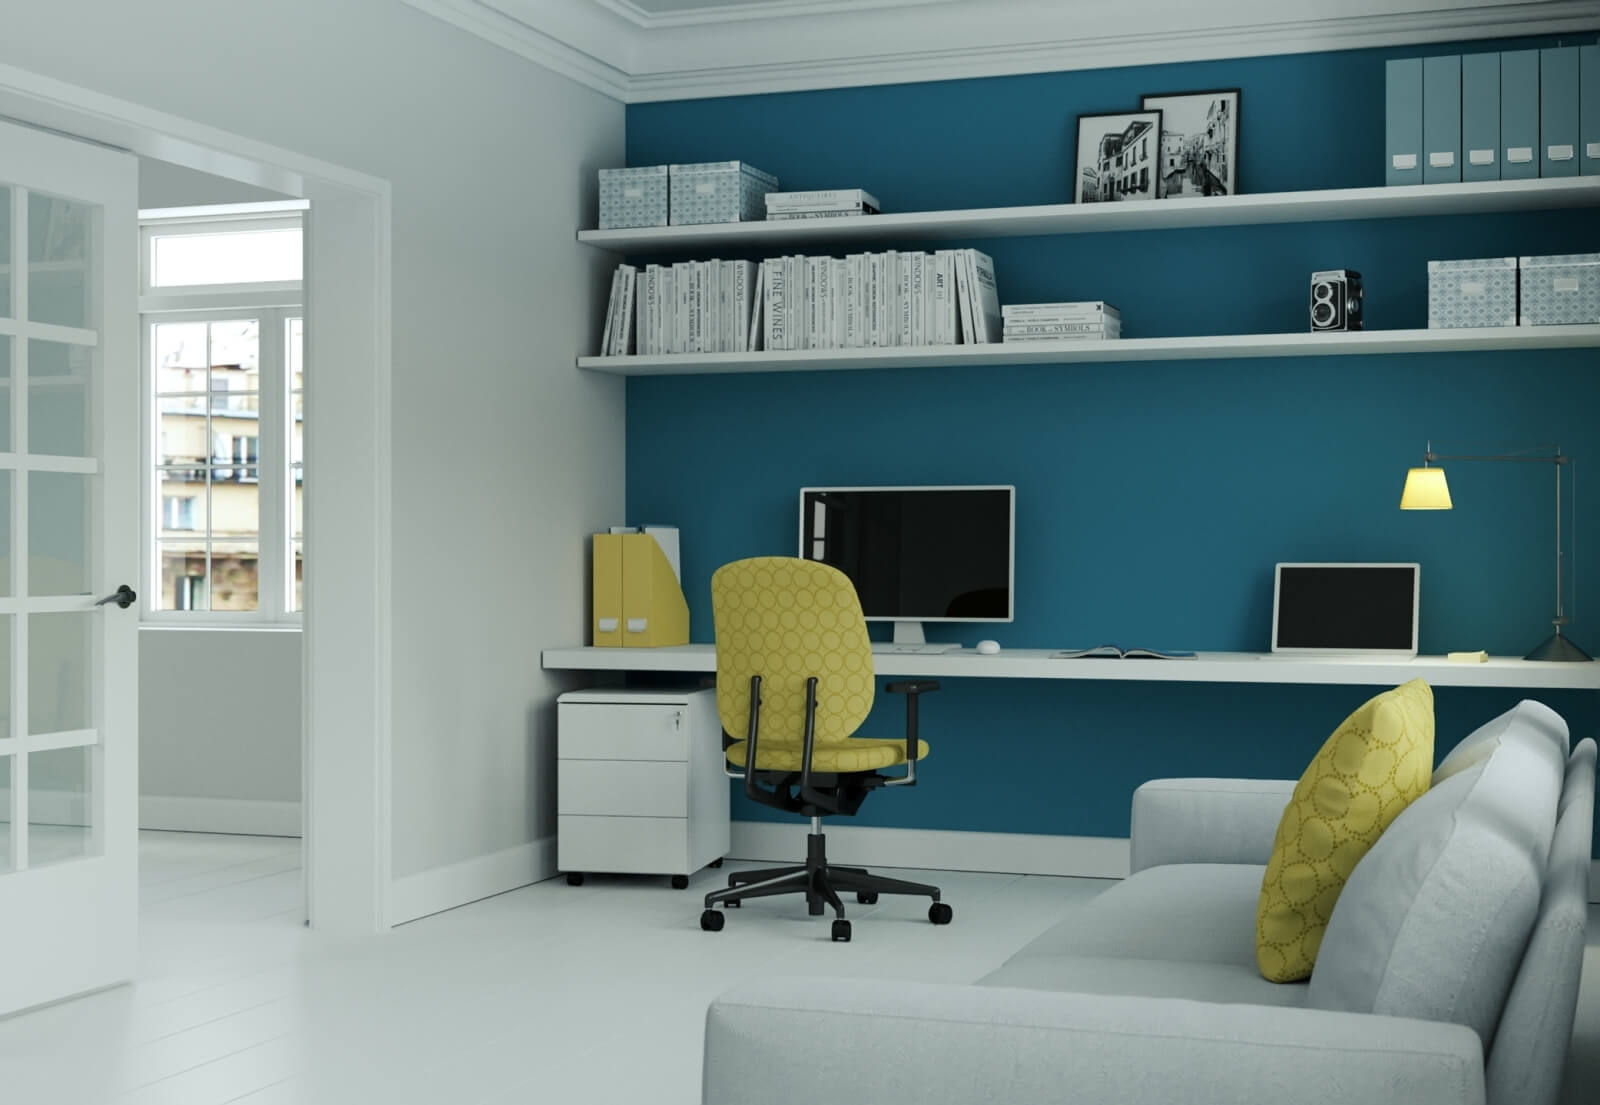 Easy Practical Tips For Setting Up An Ergonomic Workspace At Home 1